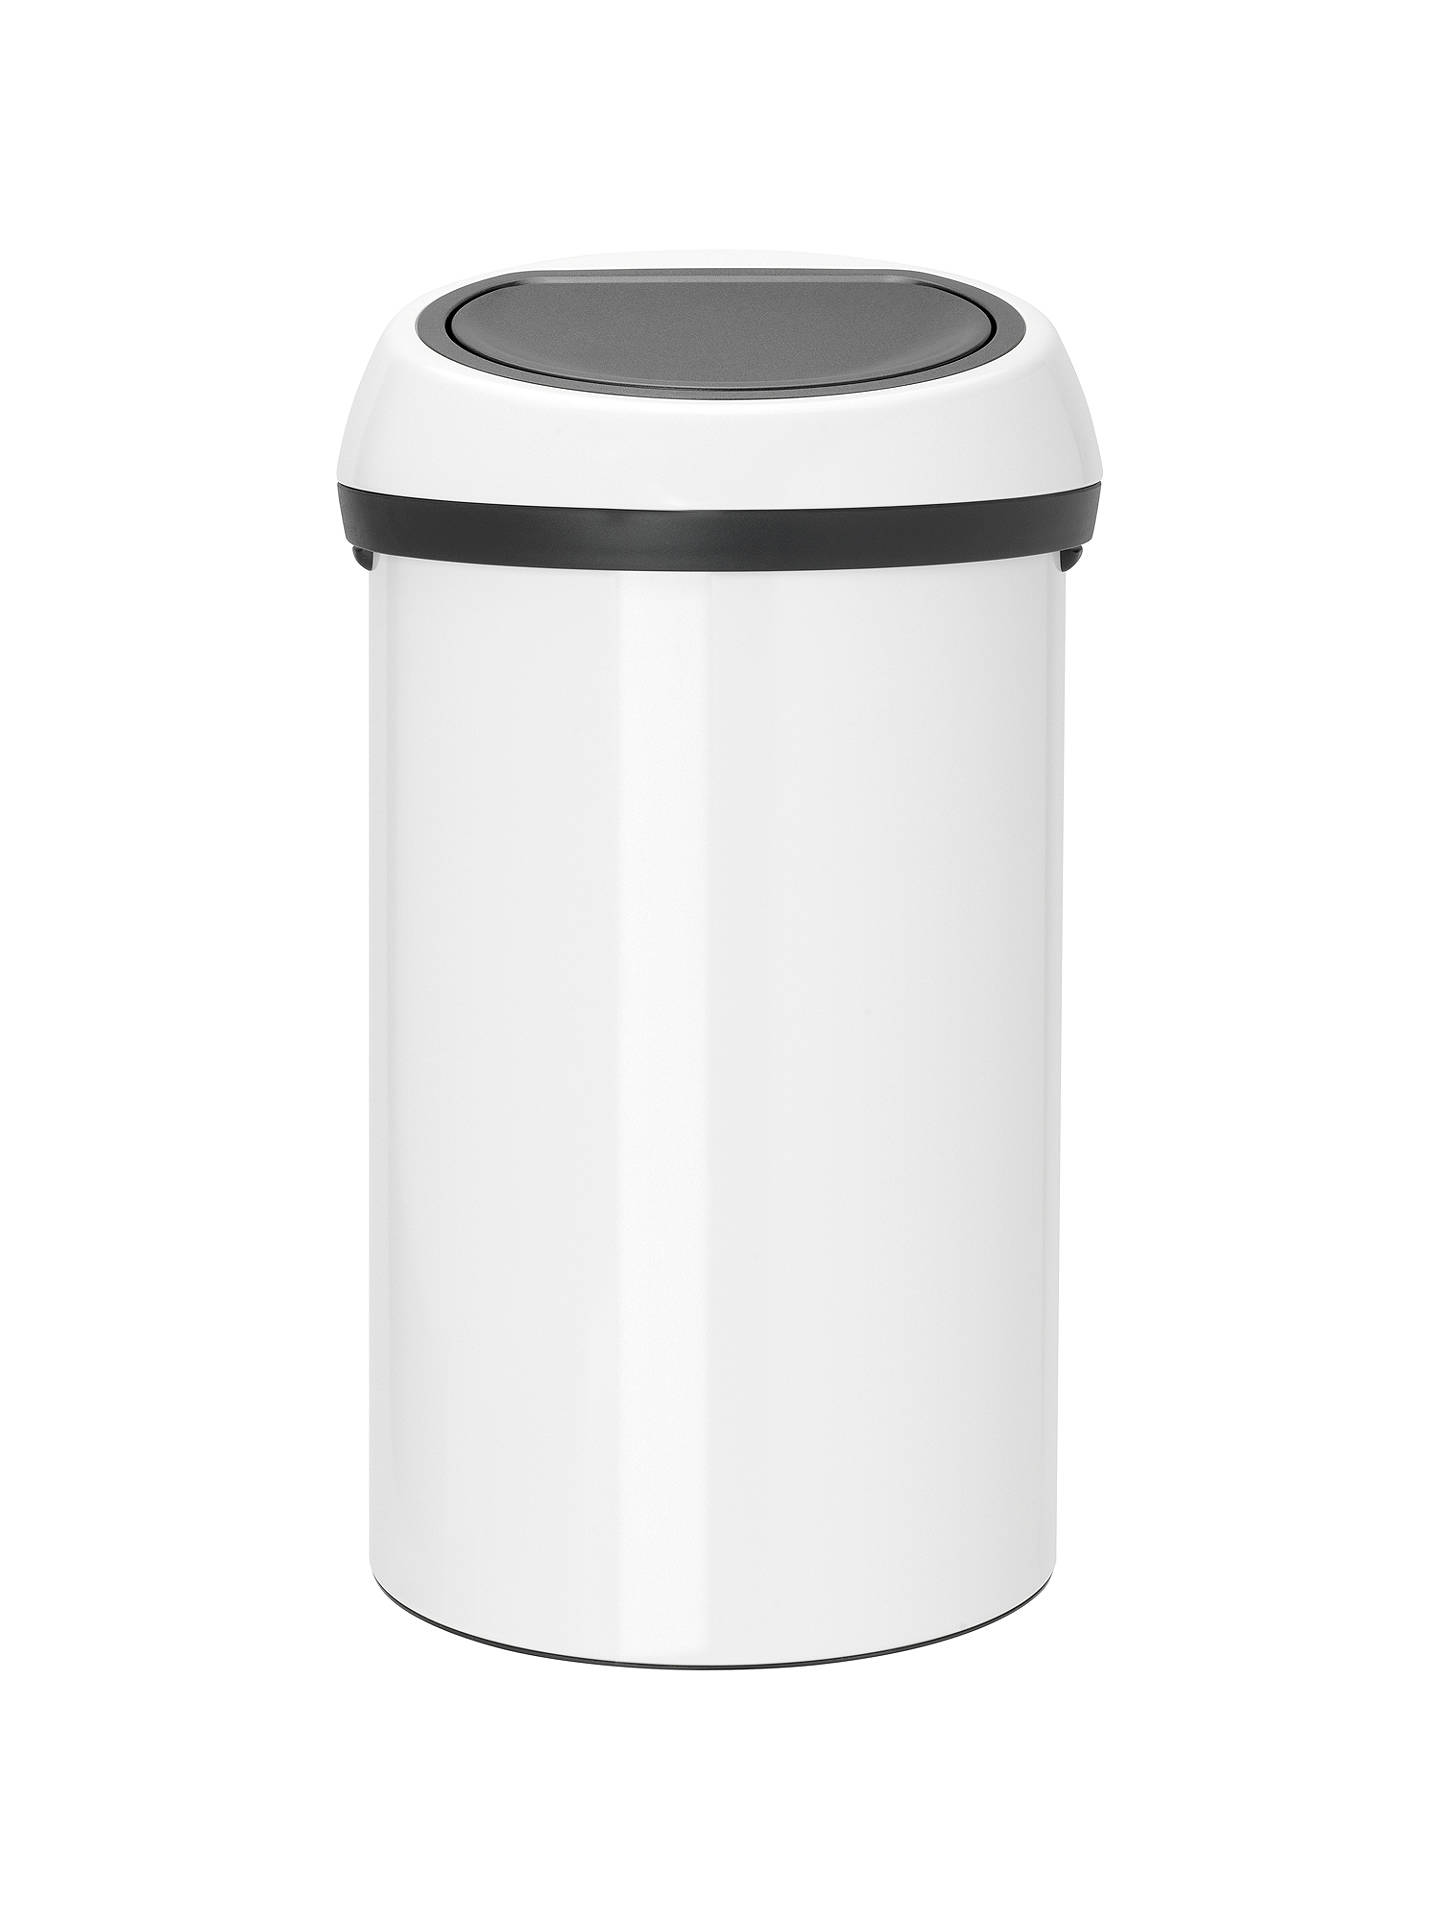 brabantia touch bin white 60l at john lewis partners. Black Bedroom Furniture Sets. Home Design Ideas